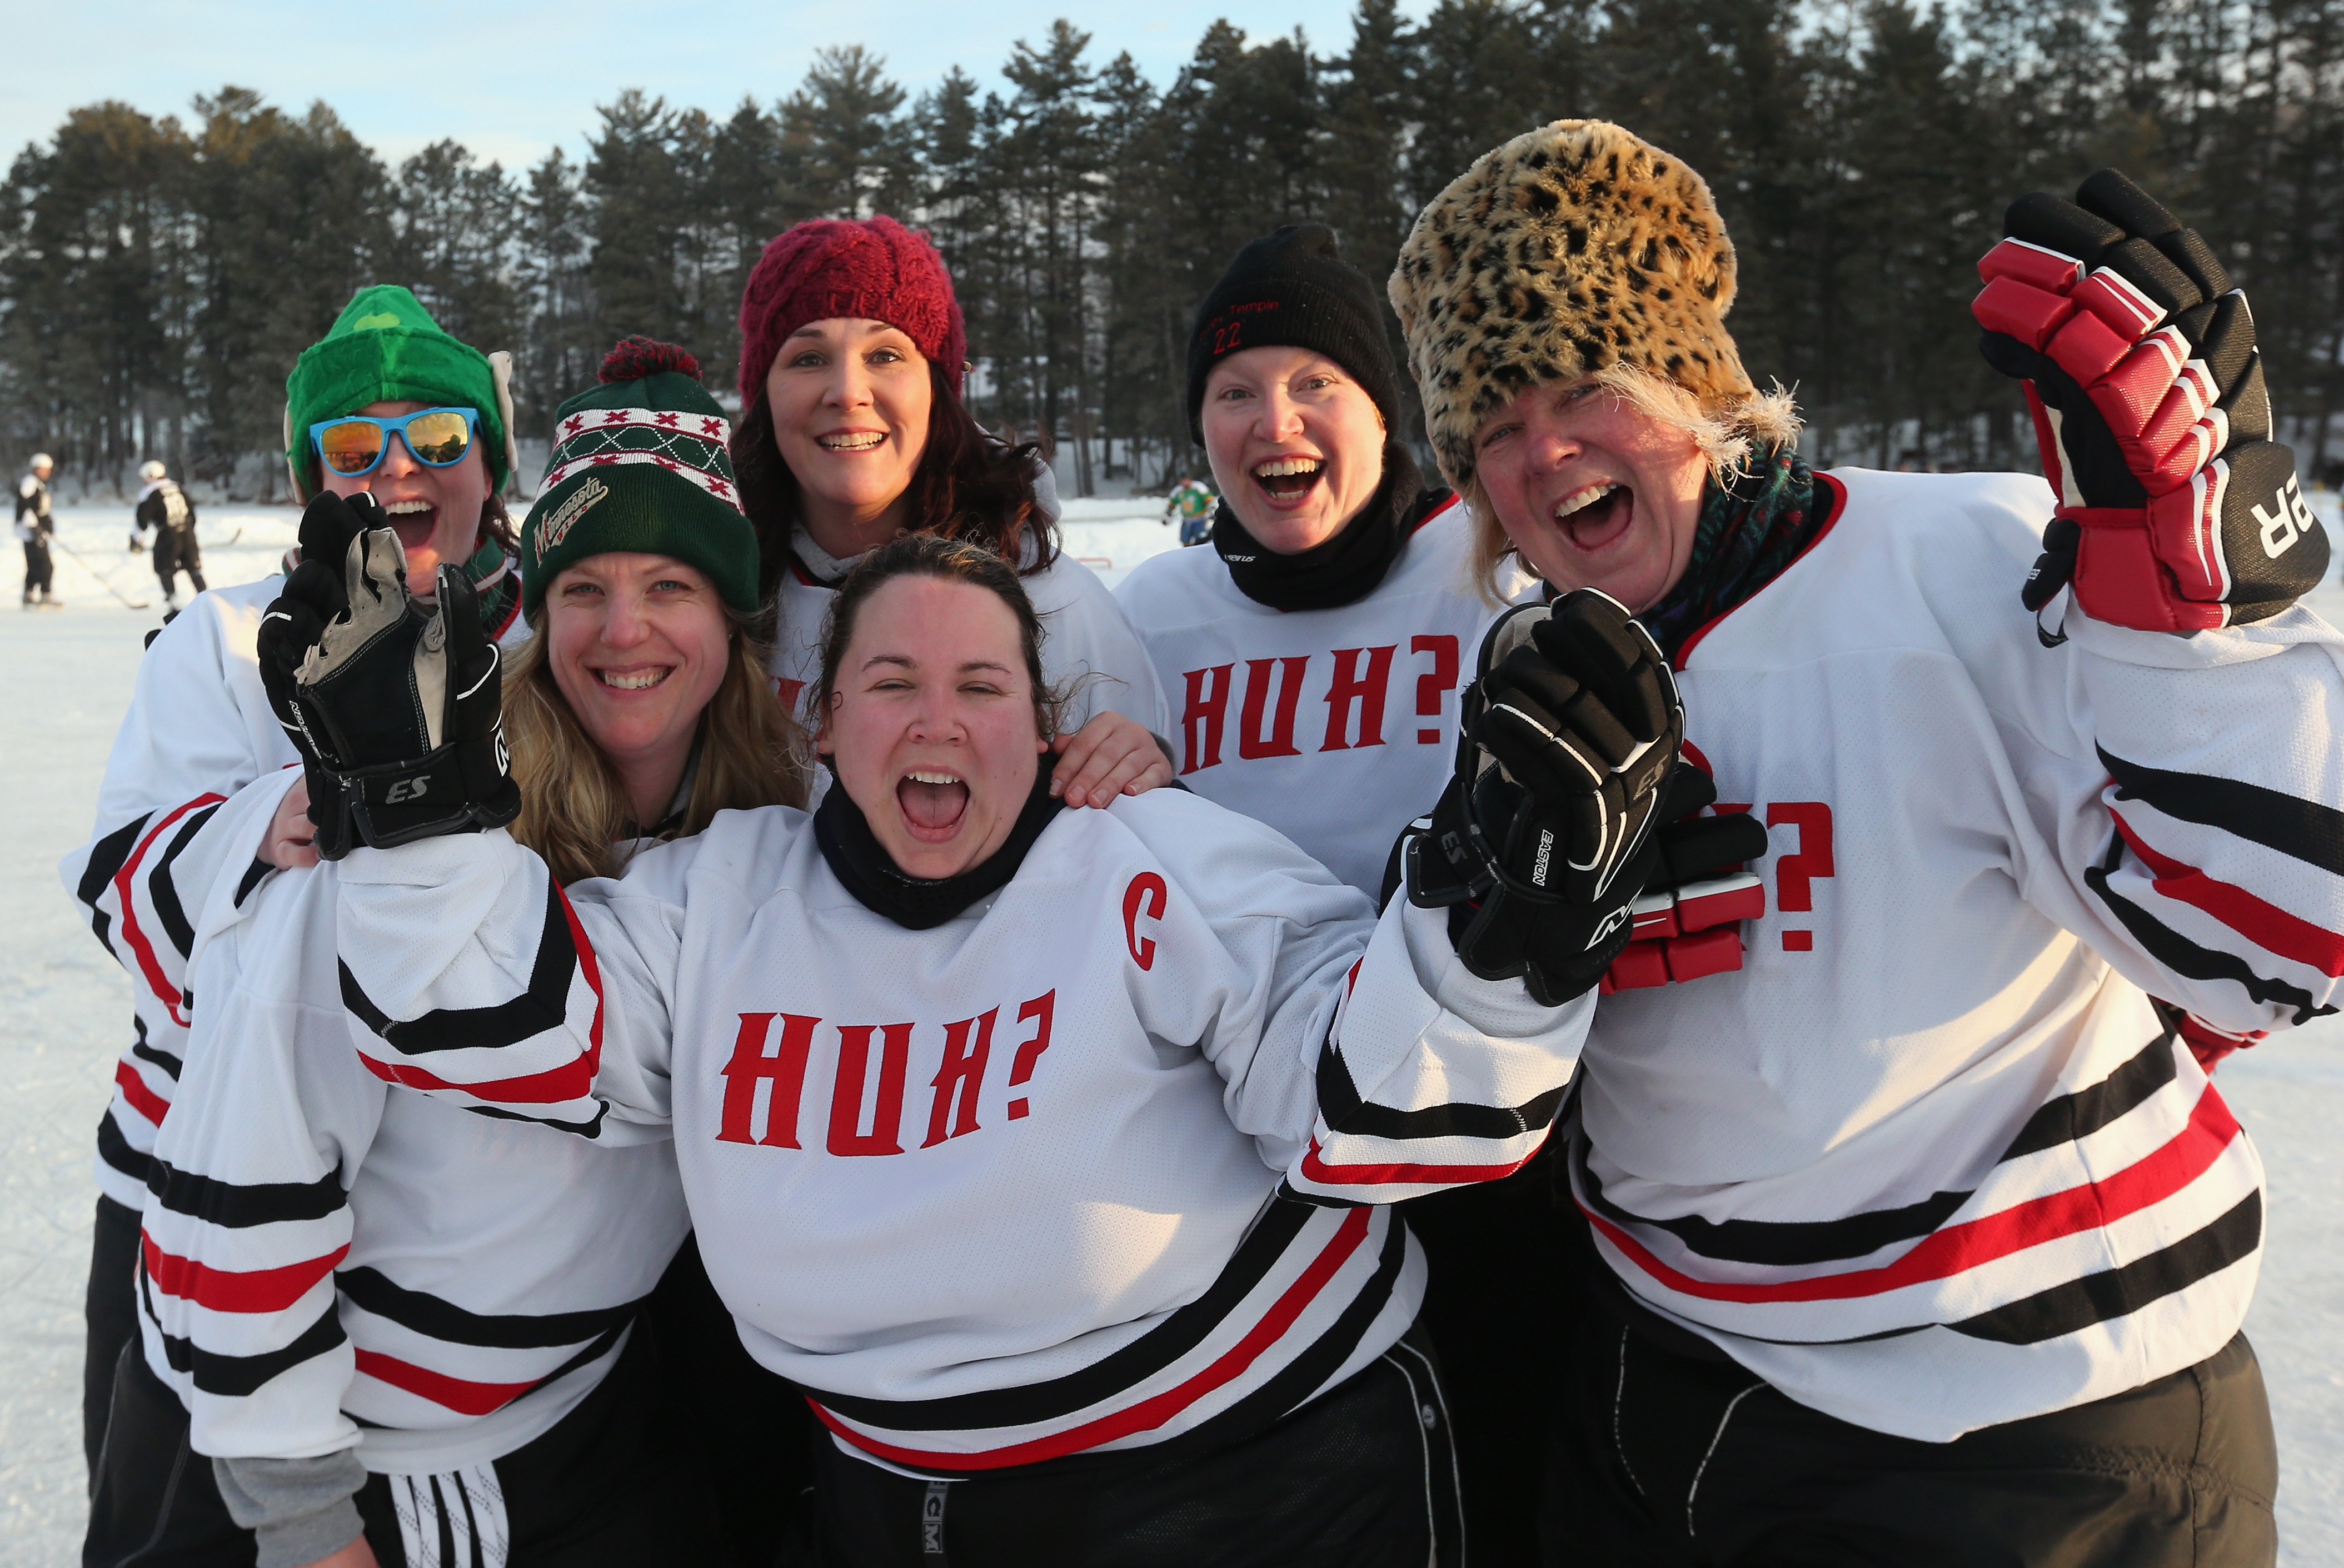 The State of Hockey may not be at its best lately, but Hockey Day Minnesota is always a great day to celebrate the game you love.